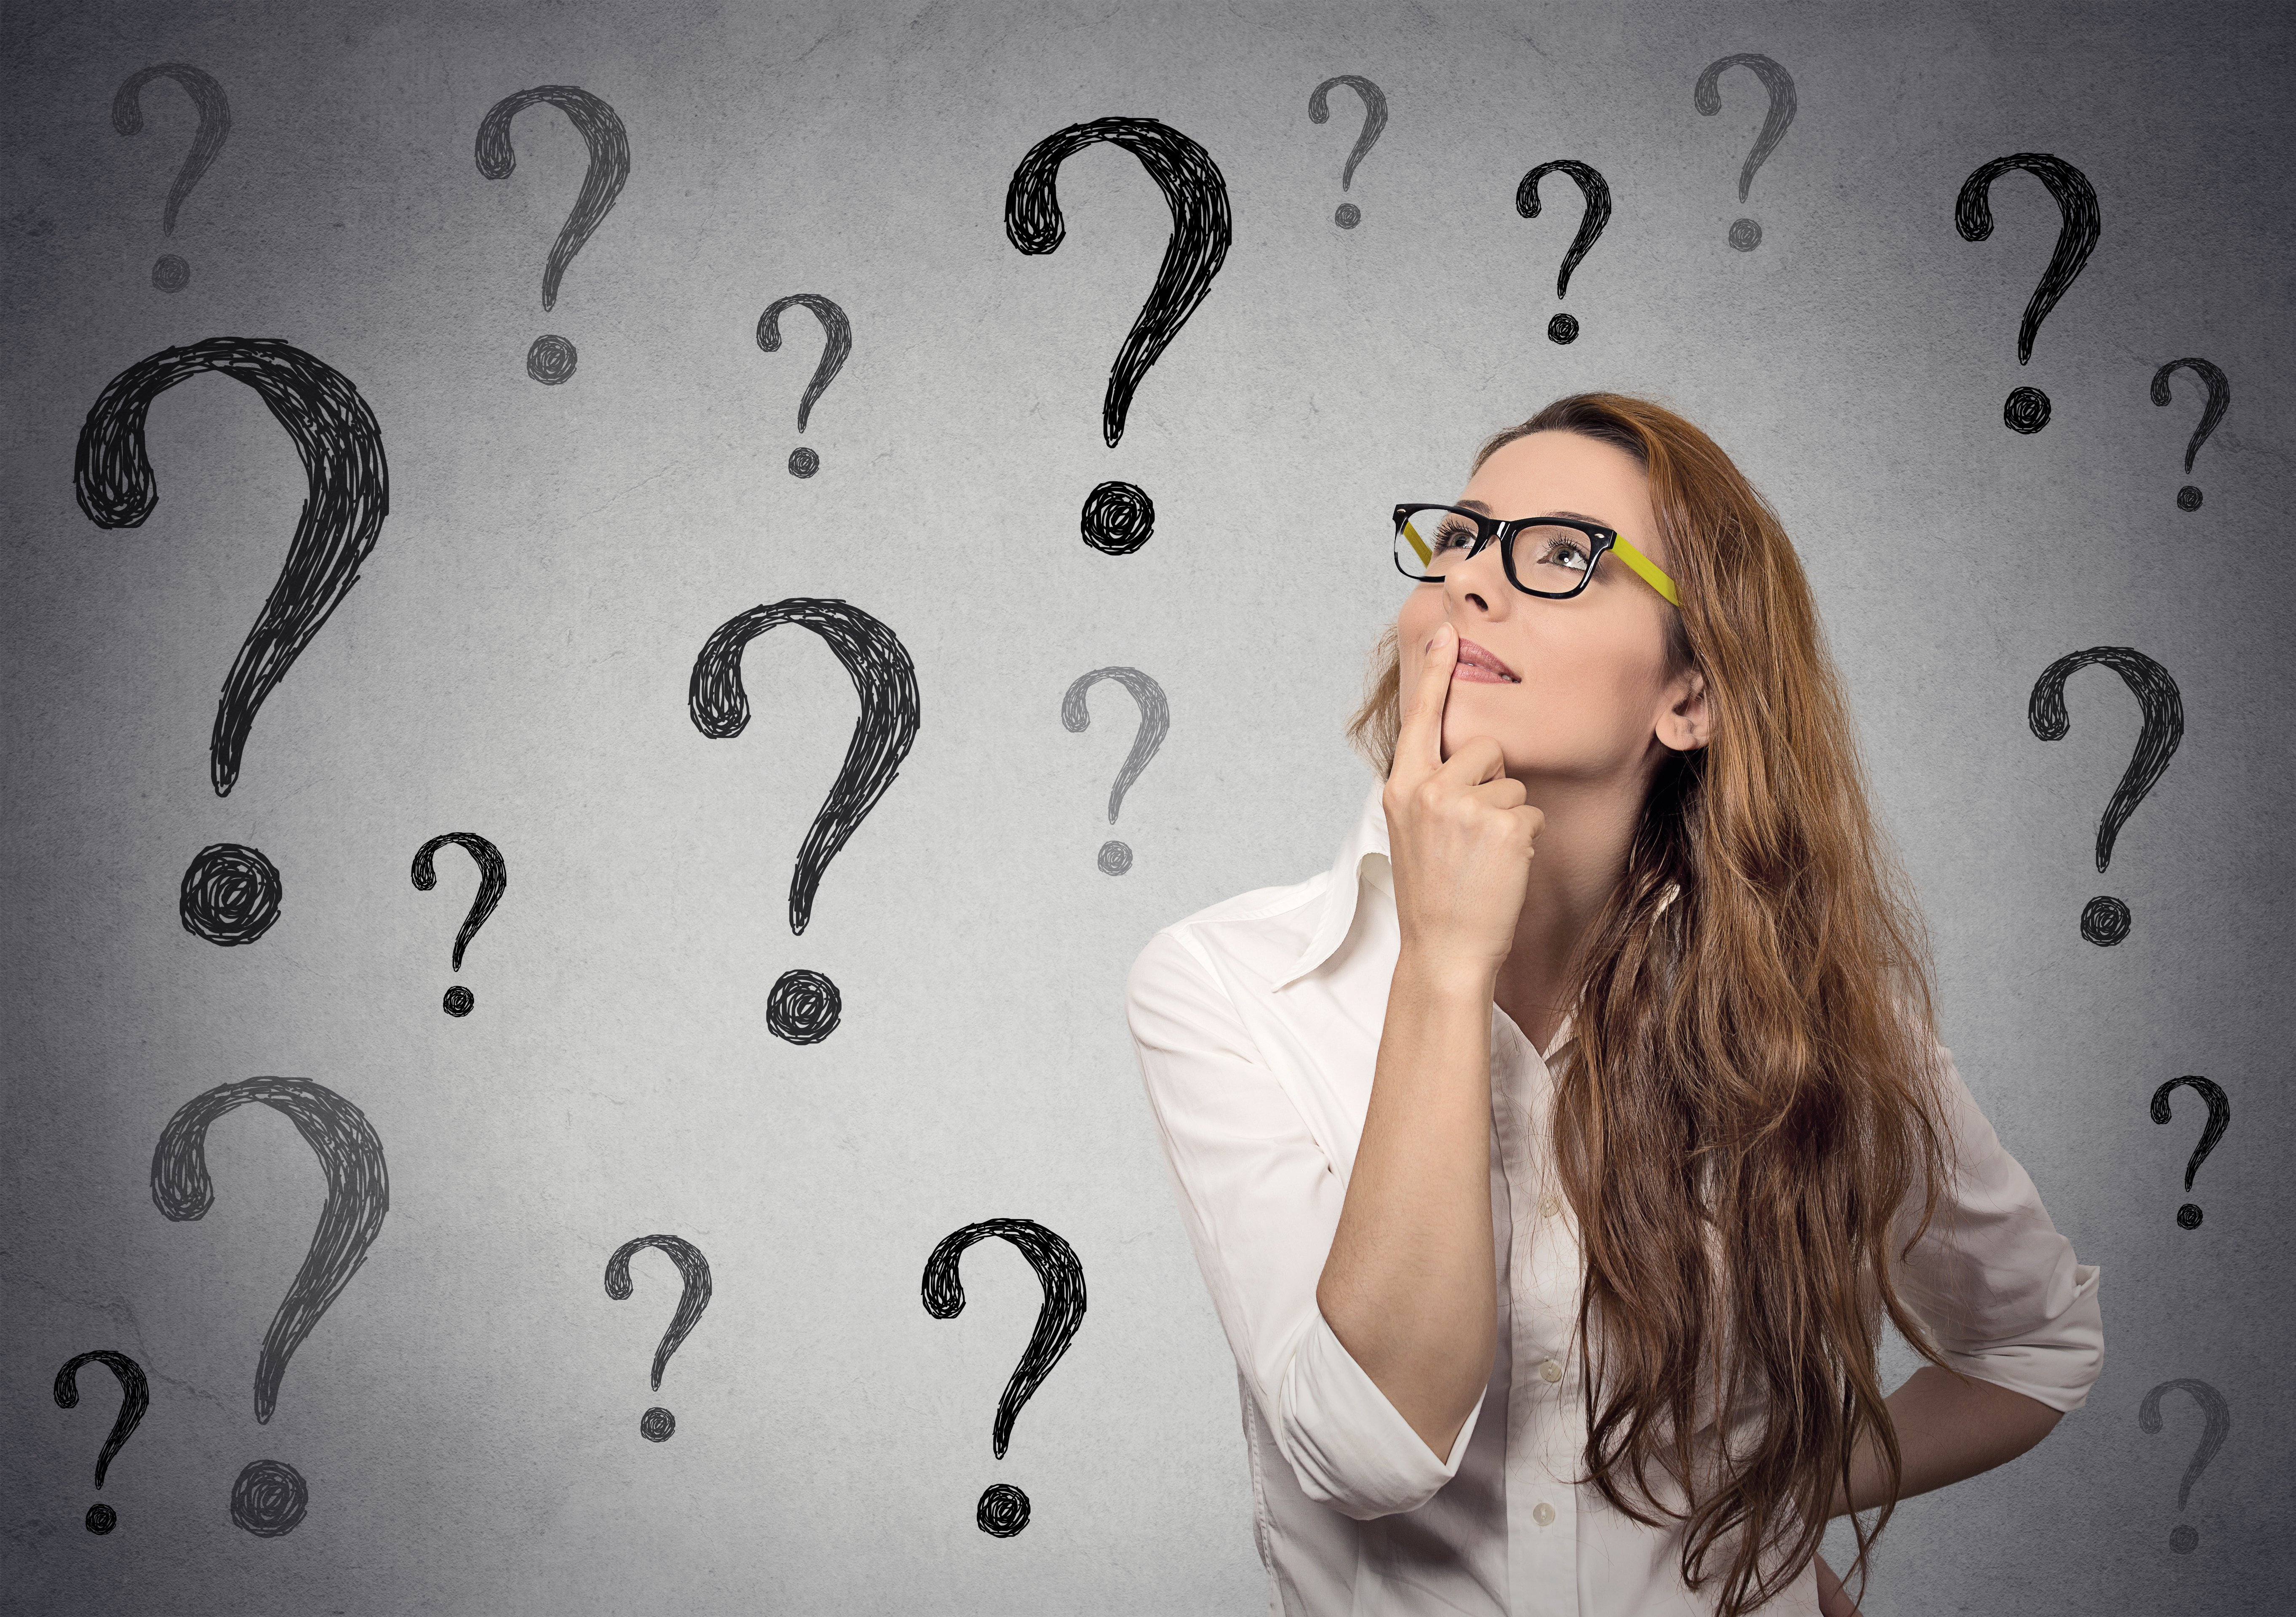 The 6 Best Questions for Fluent English Conversations